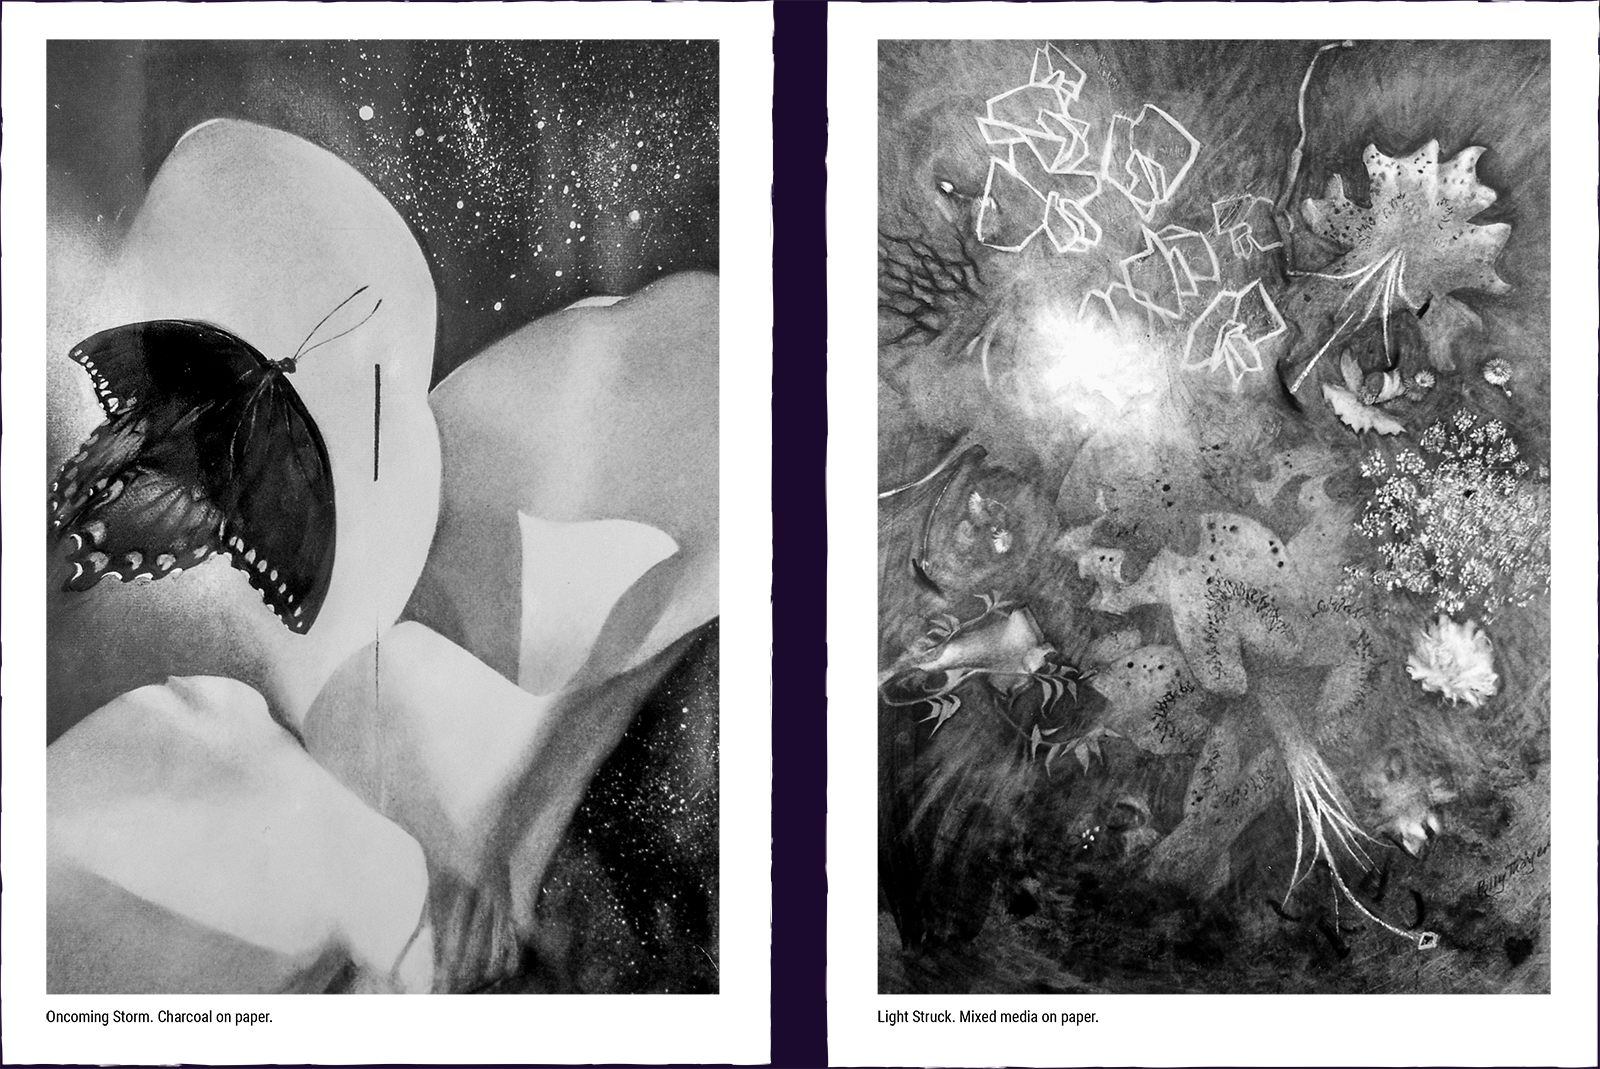 Two mystery paintings. (1) Oncoming Storm. Charcoal on paper. (2) Light Struck. Mixed media on paper.